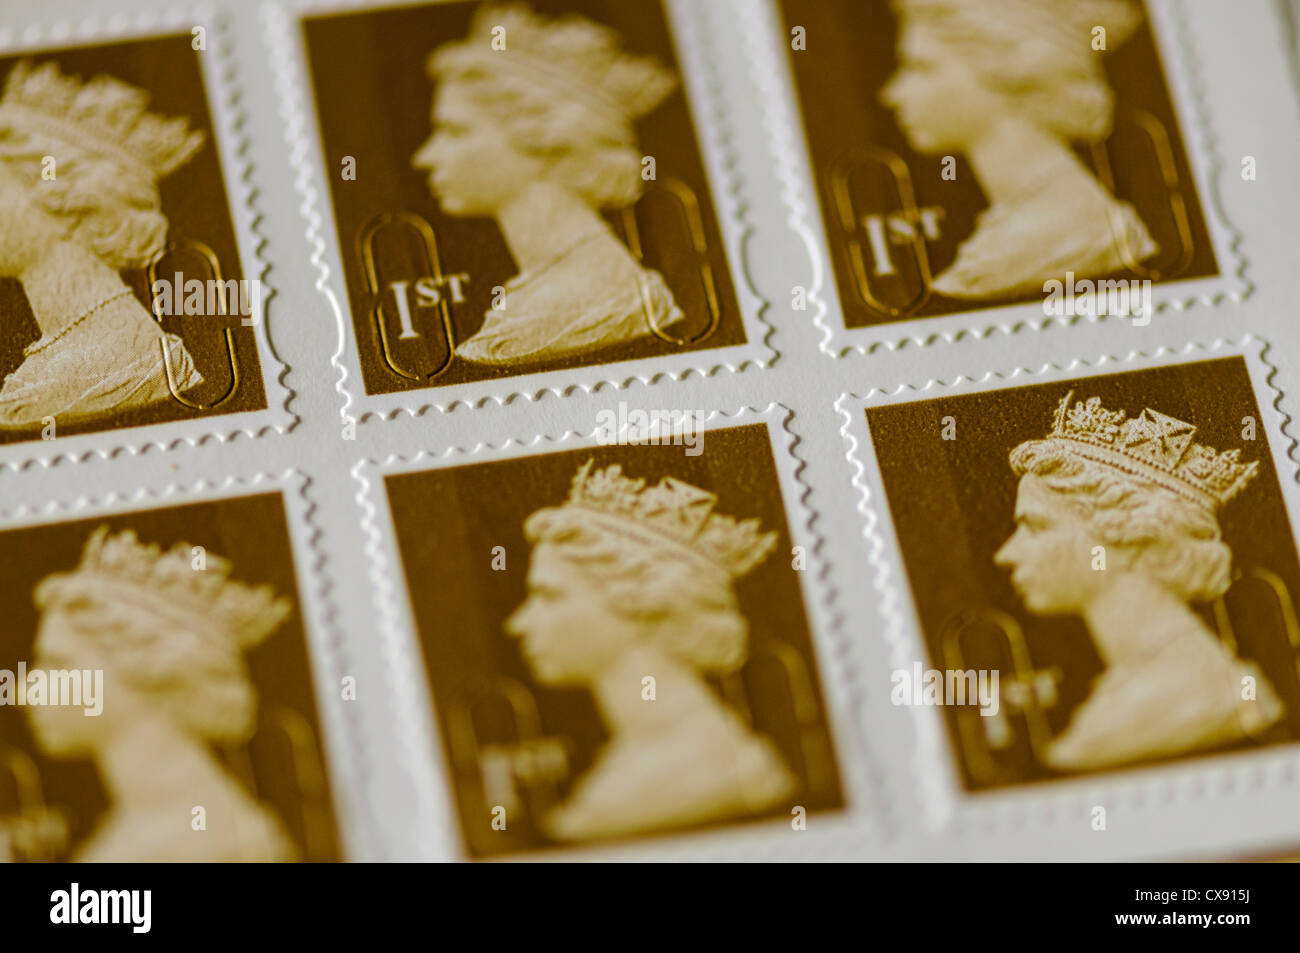 Book of self-adhesive UK first class postage stamps - Stock Image